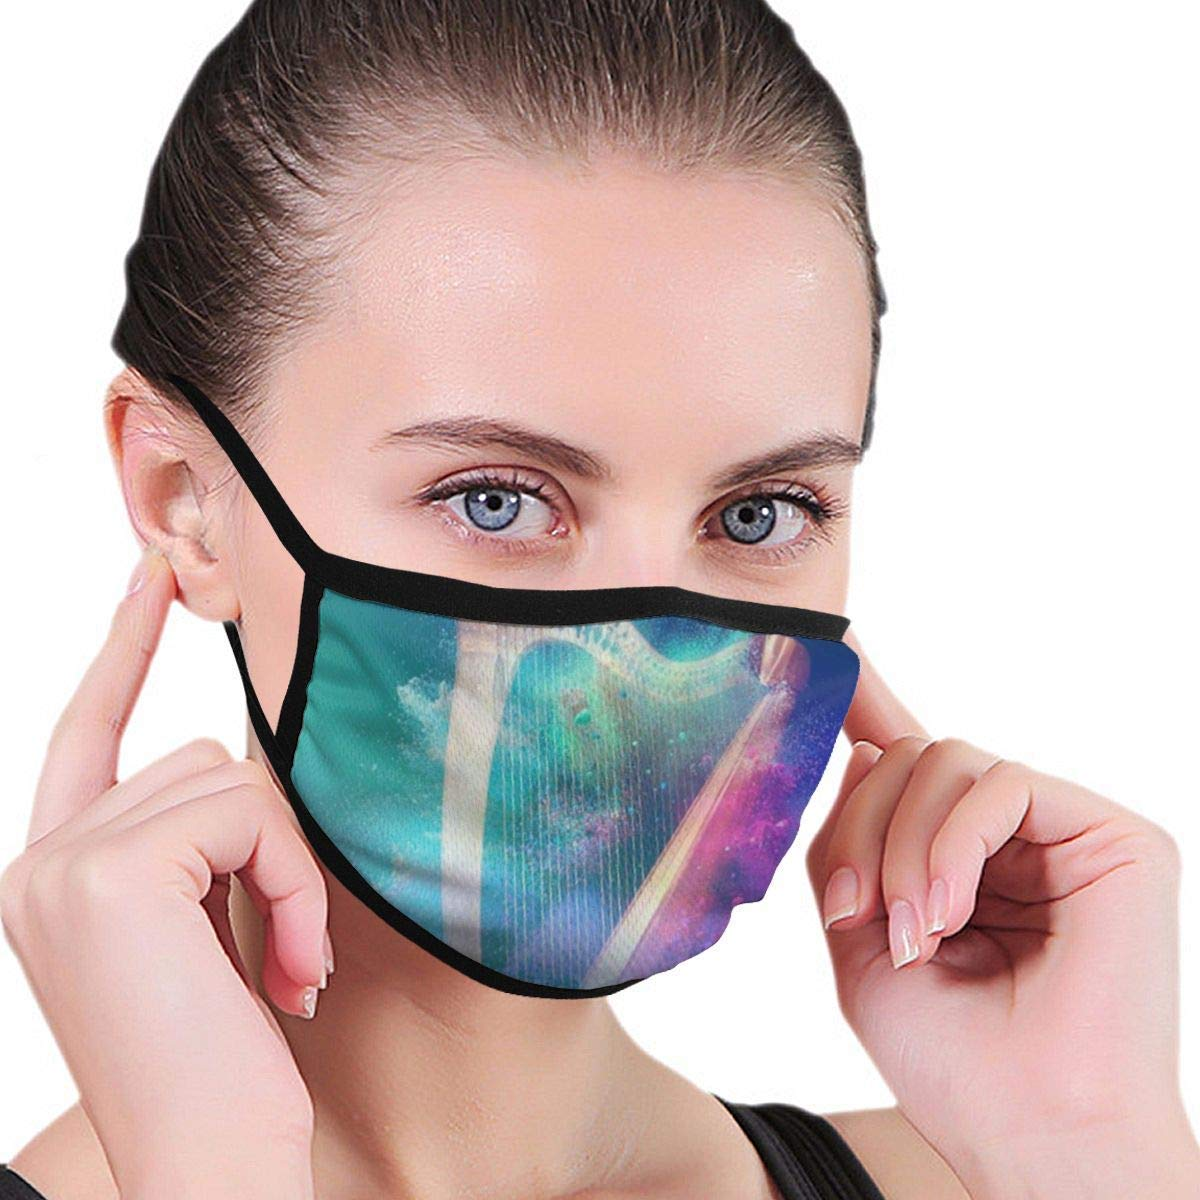 Bdwuhs Mascarillas Bucales Fashion Mouth Mask,Harp Spray Painting Unisex Anti-Dust Face Mouth Muffle Mask For Kids Teens Men Women, Windproof Motorcycle Face Emoticon Masks For Ski Cycling Camping